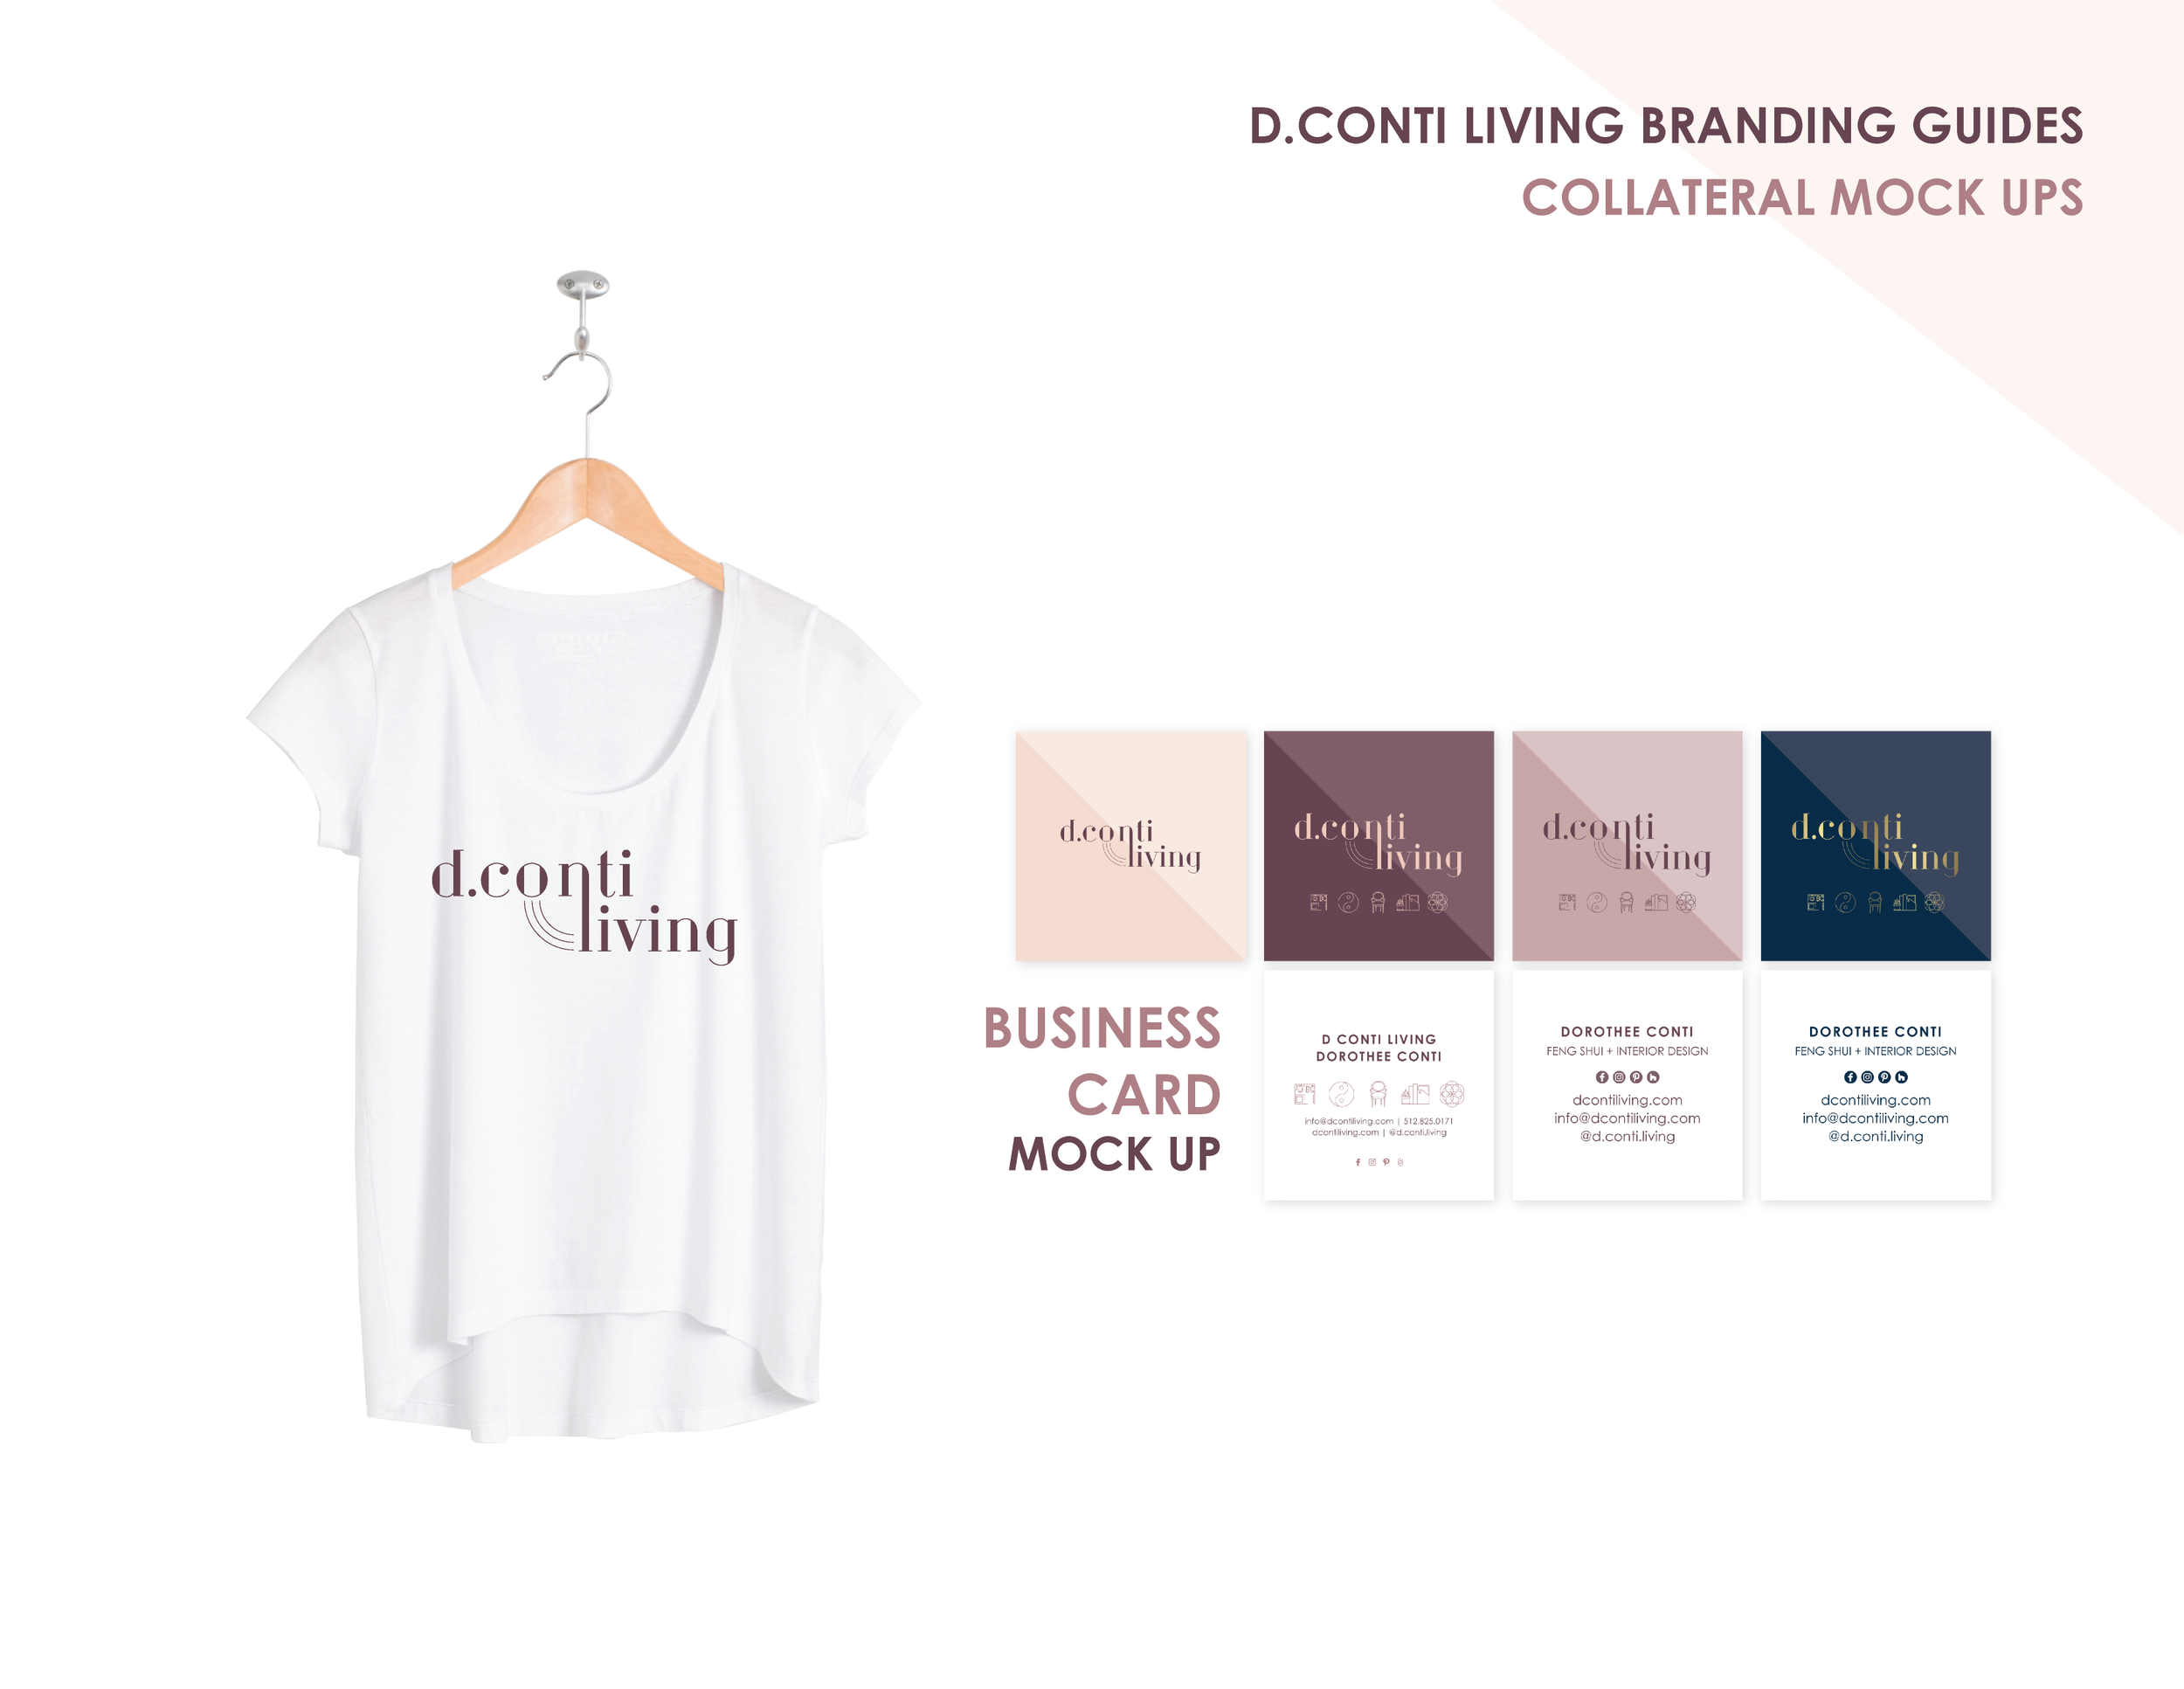 D Conti Living_Brand Guides-10.png